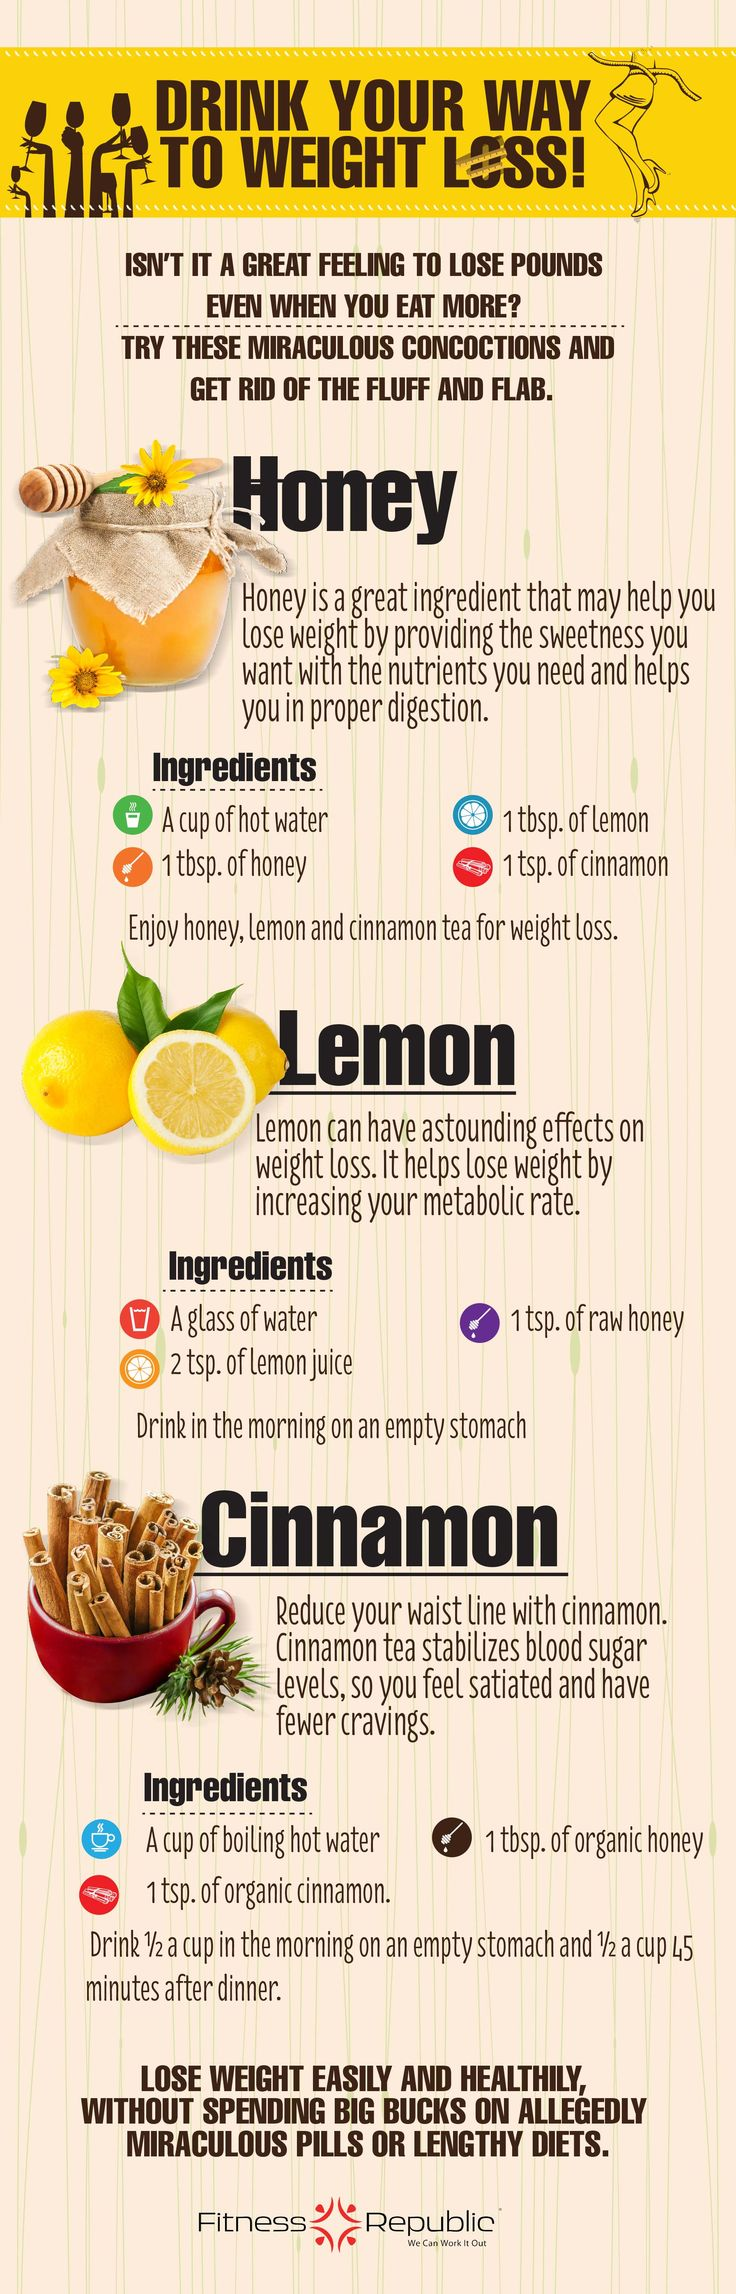 honey, lemon and cinnamon